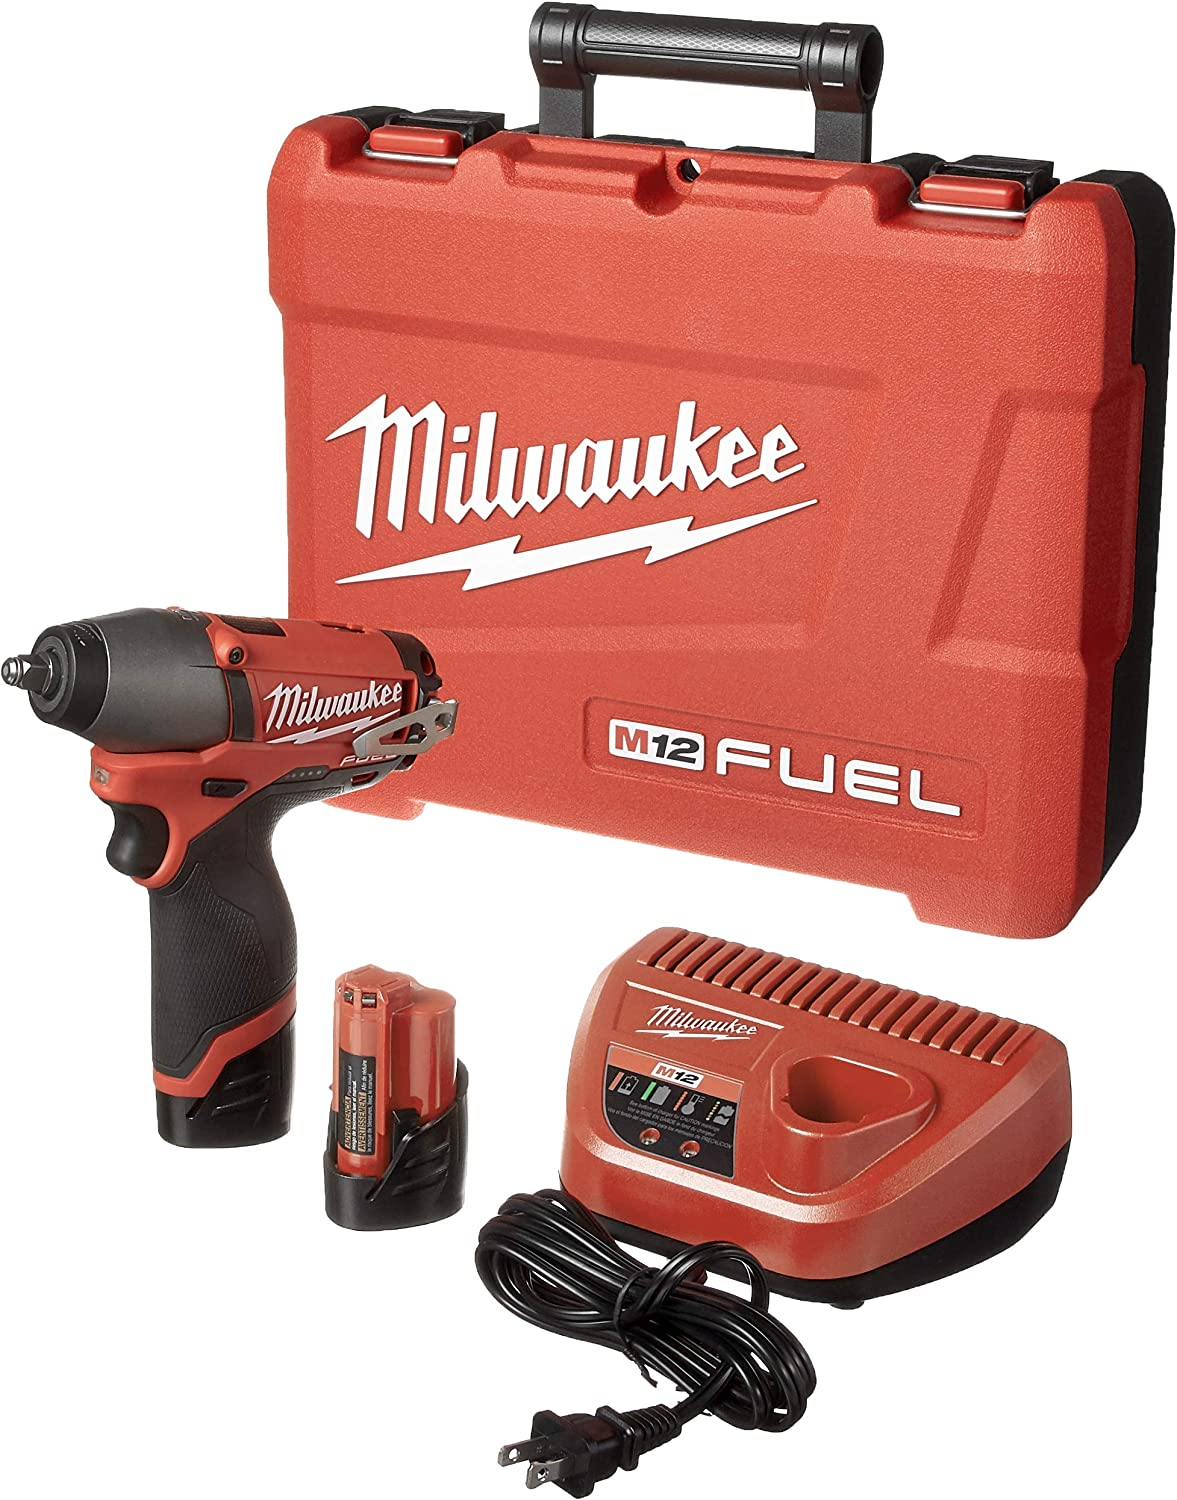 Tool-Only Impact Wrench Milwaukee 2463-20 M12  Li-ion Cordless 3//8 in FREESHIP